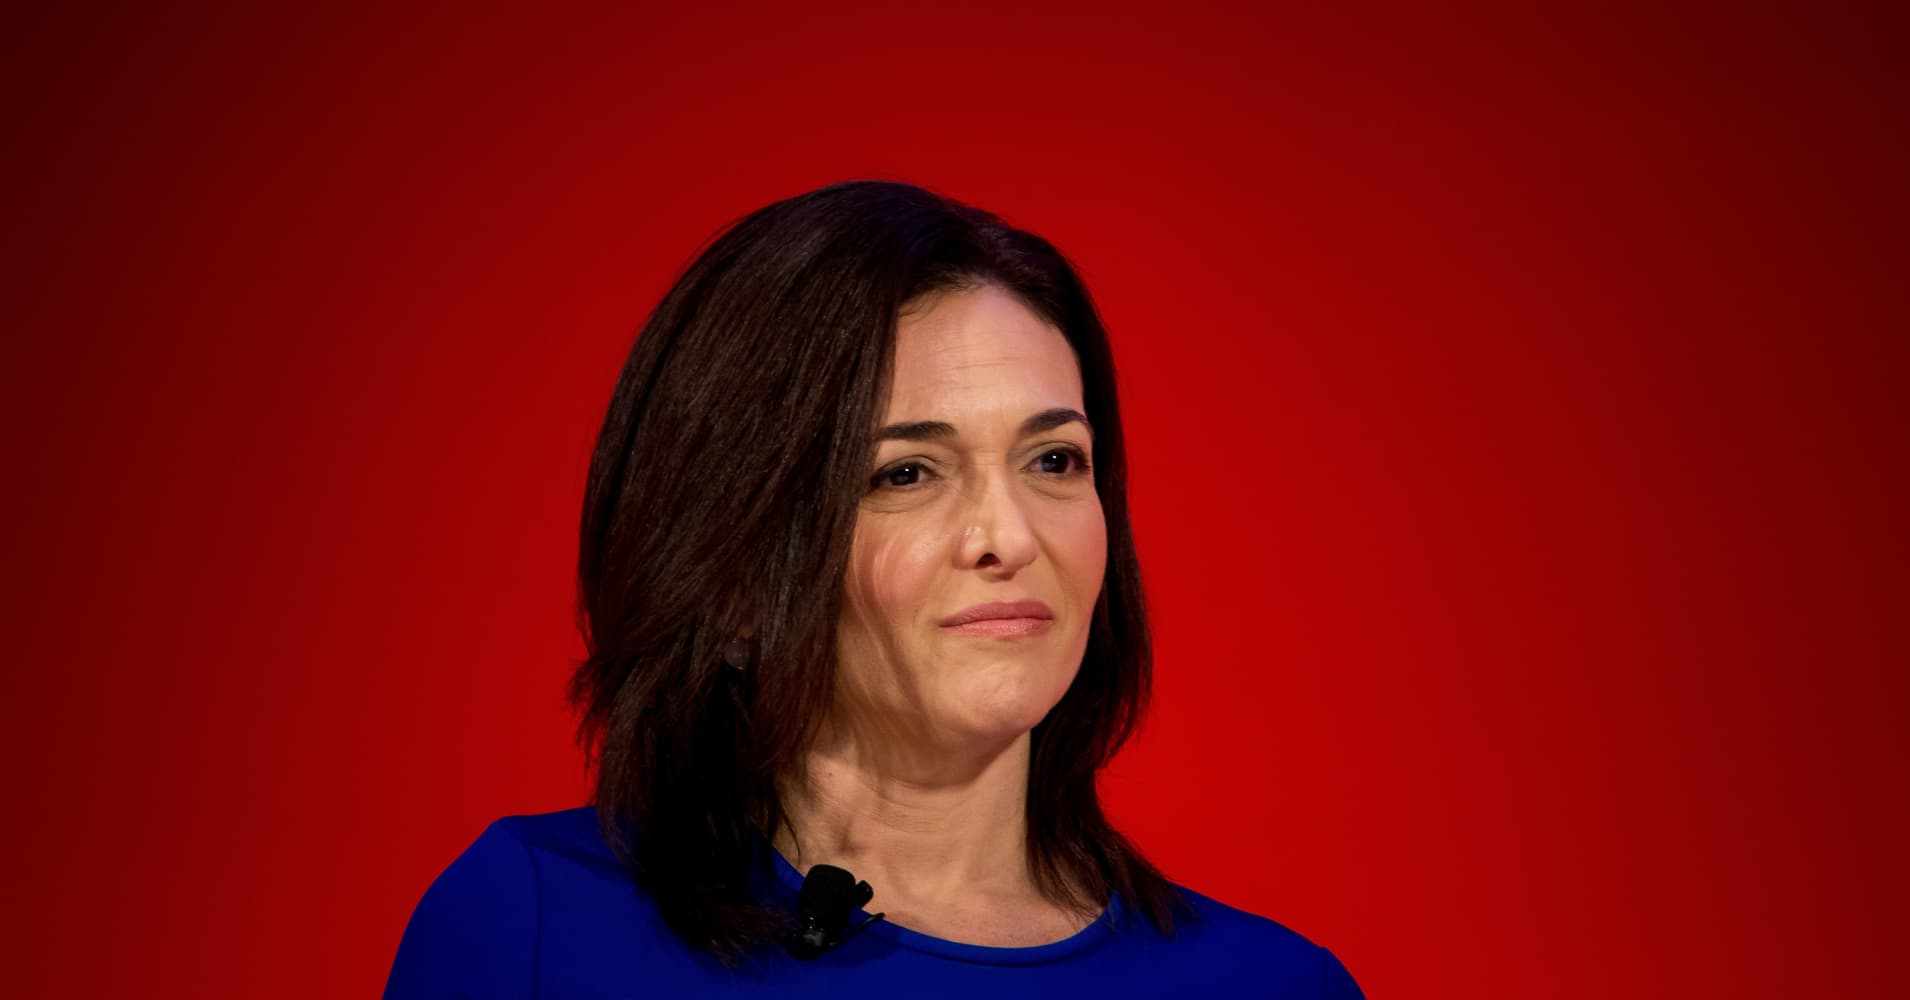 Facebook's Sheryl Sandberg says the company needs to do more to protect civil rights of users